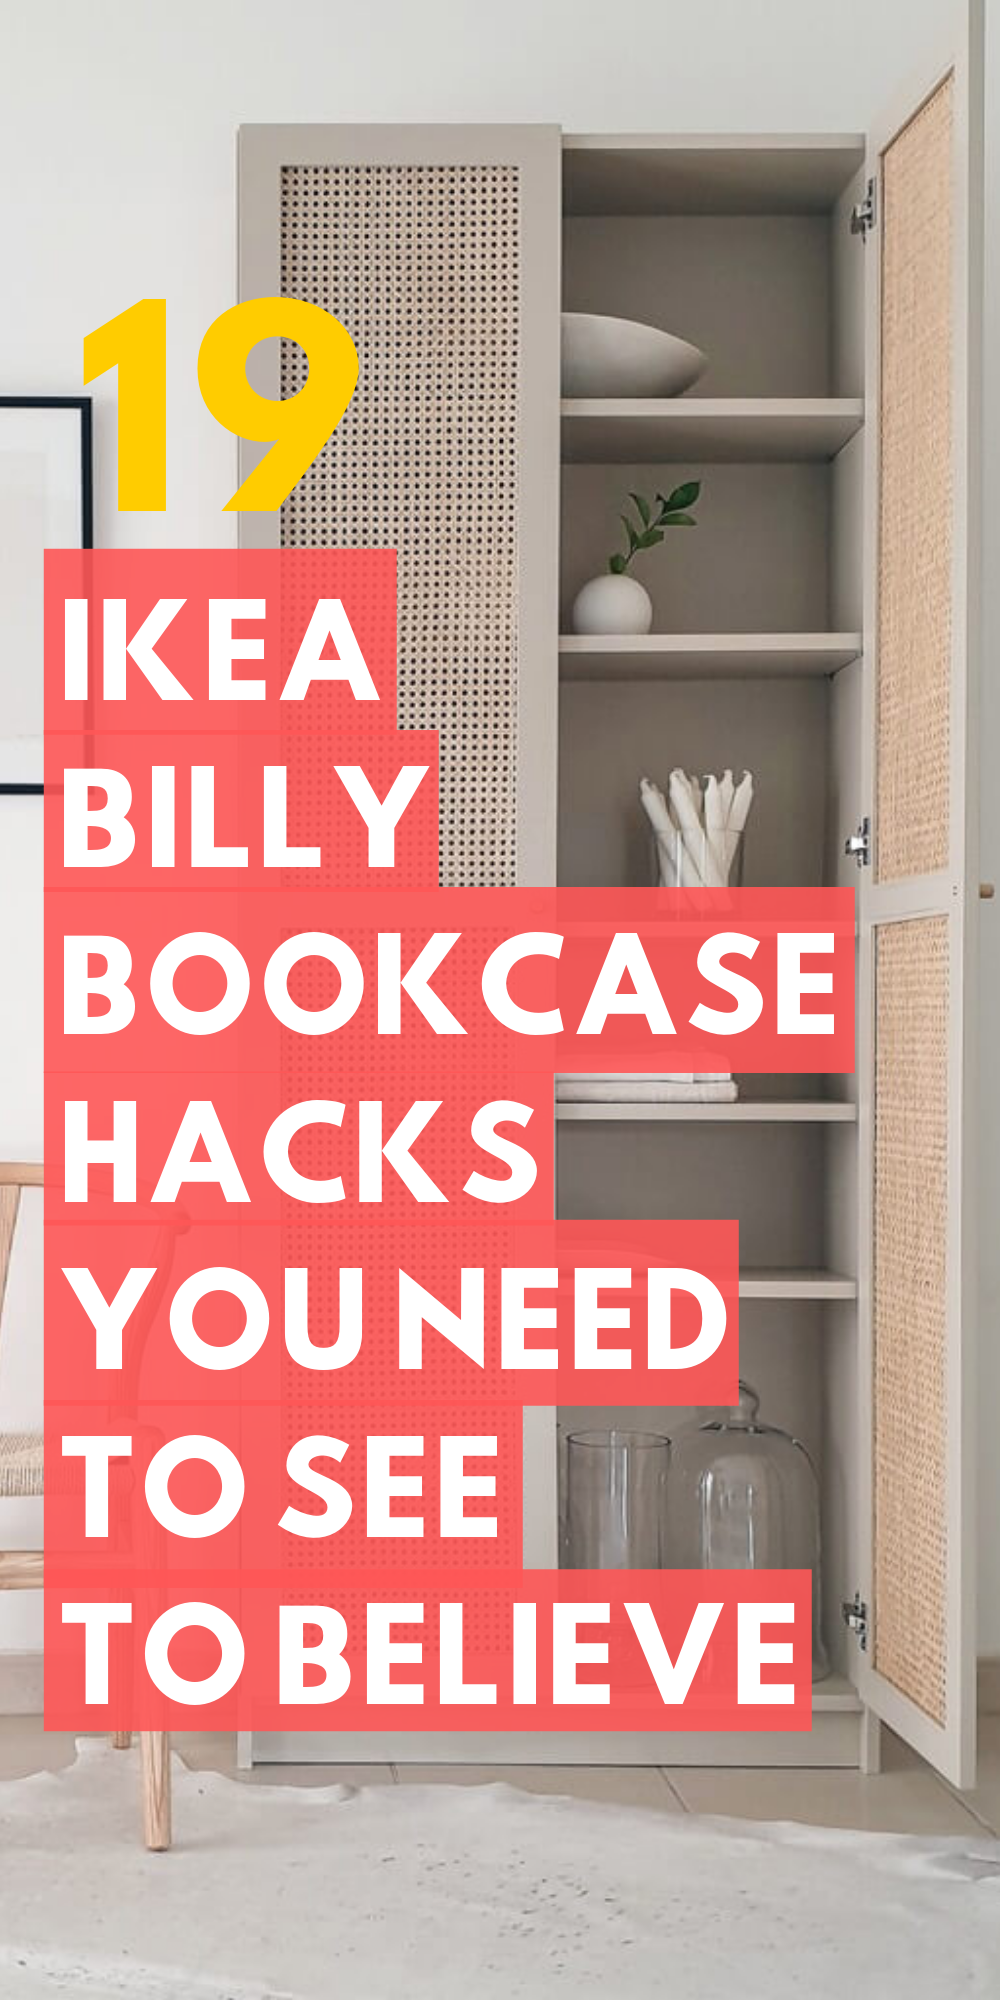 19 Ikea Billy Bookcase Hacks that are Bold and Beautiful - james and catrin #topkitchendesigns